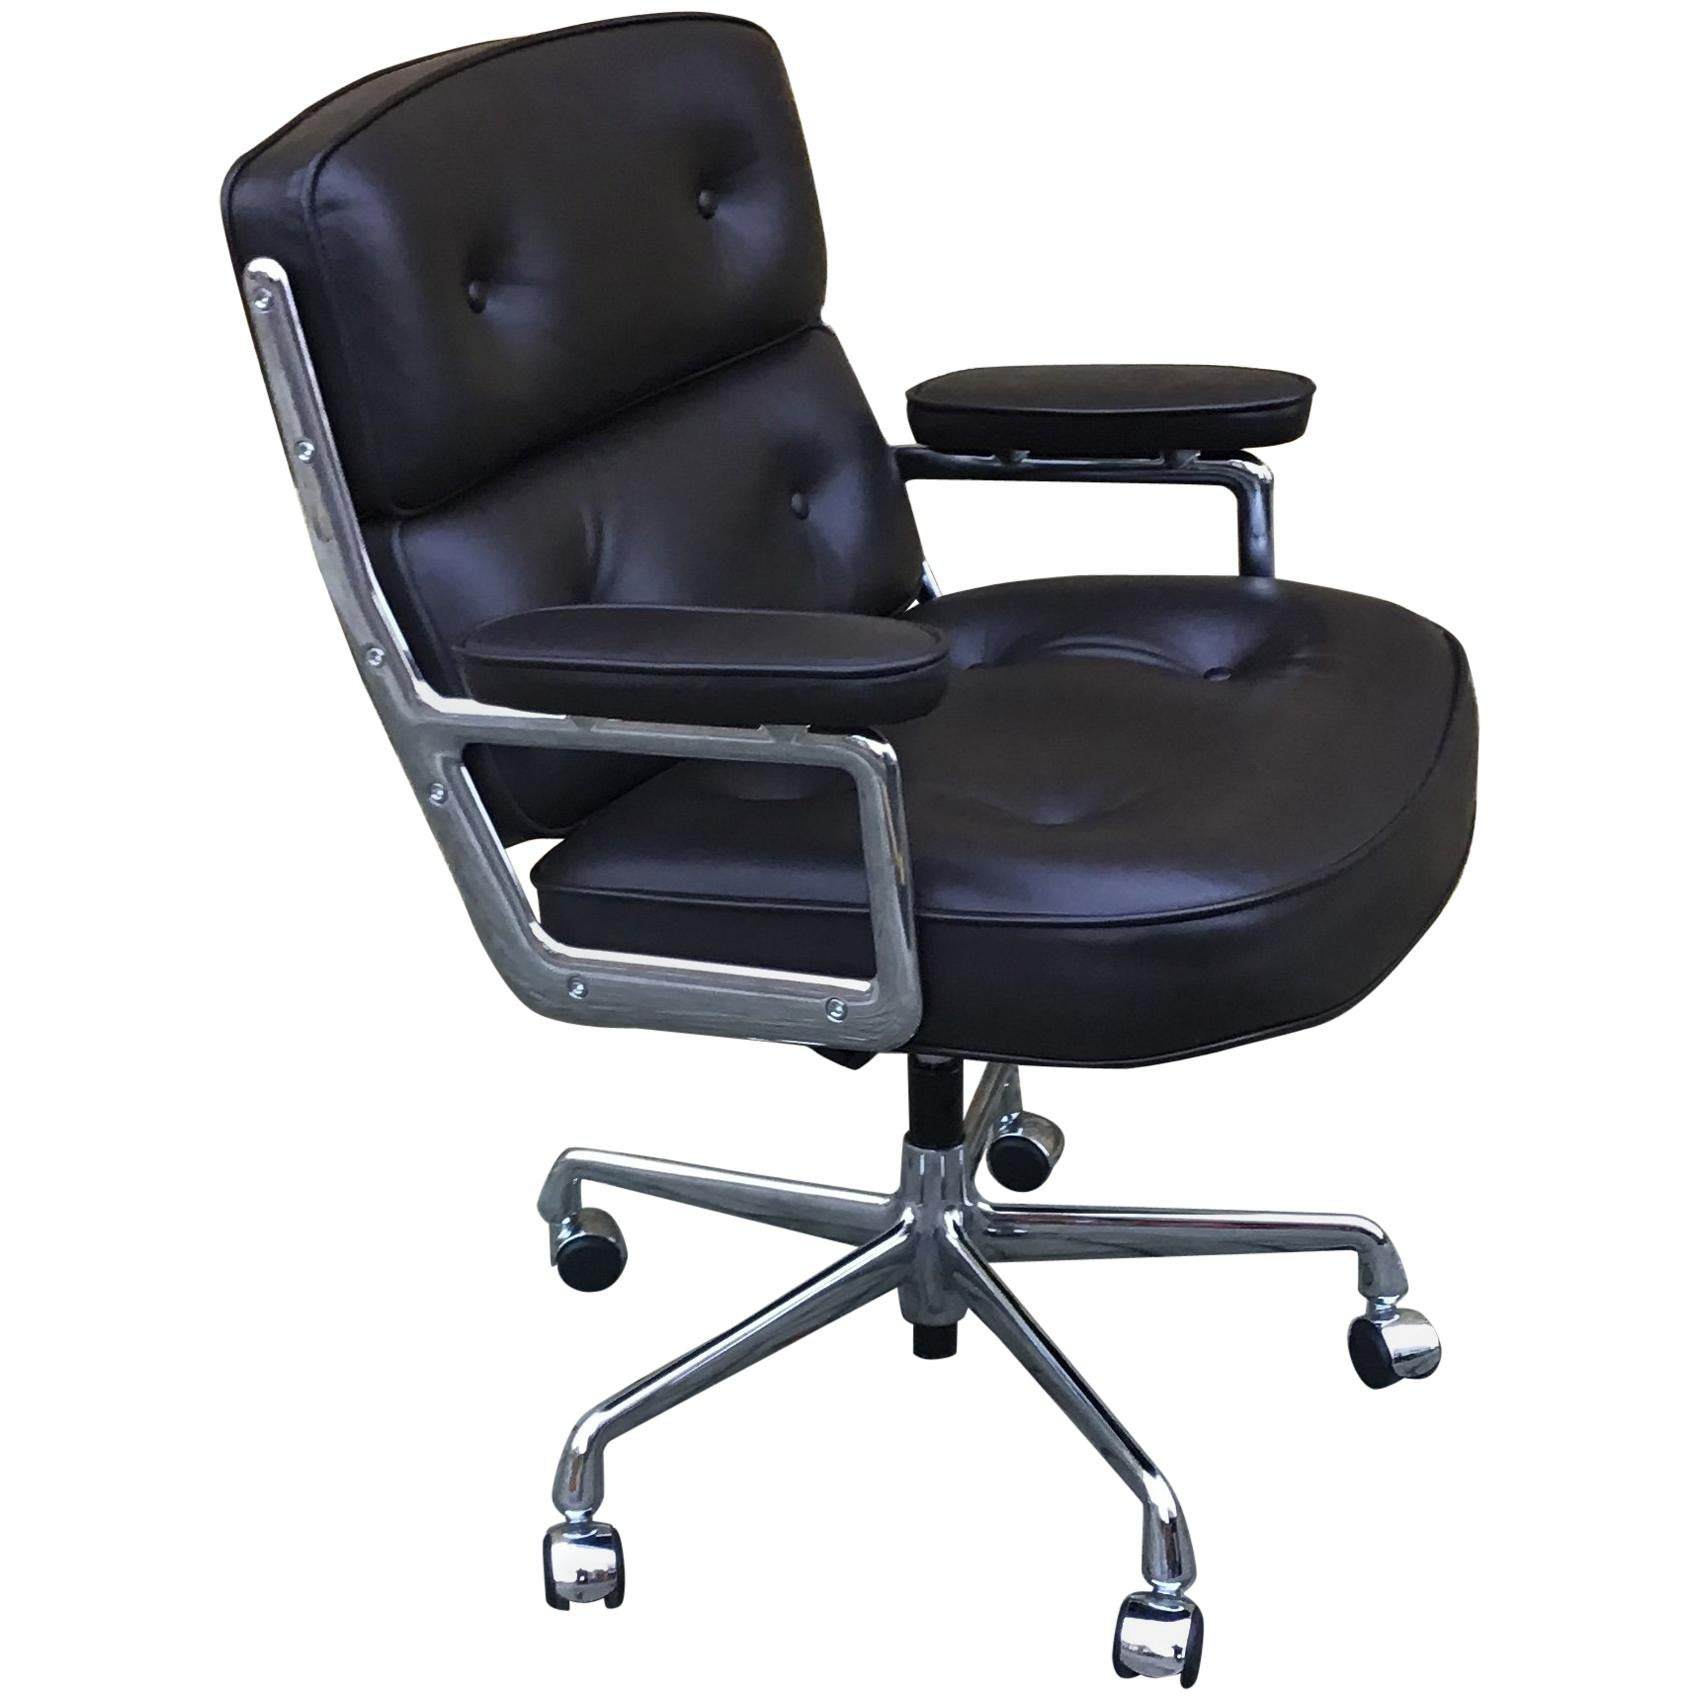 Time-Life Executive Chair by Charles & Ray Eames